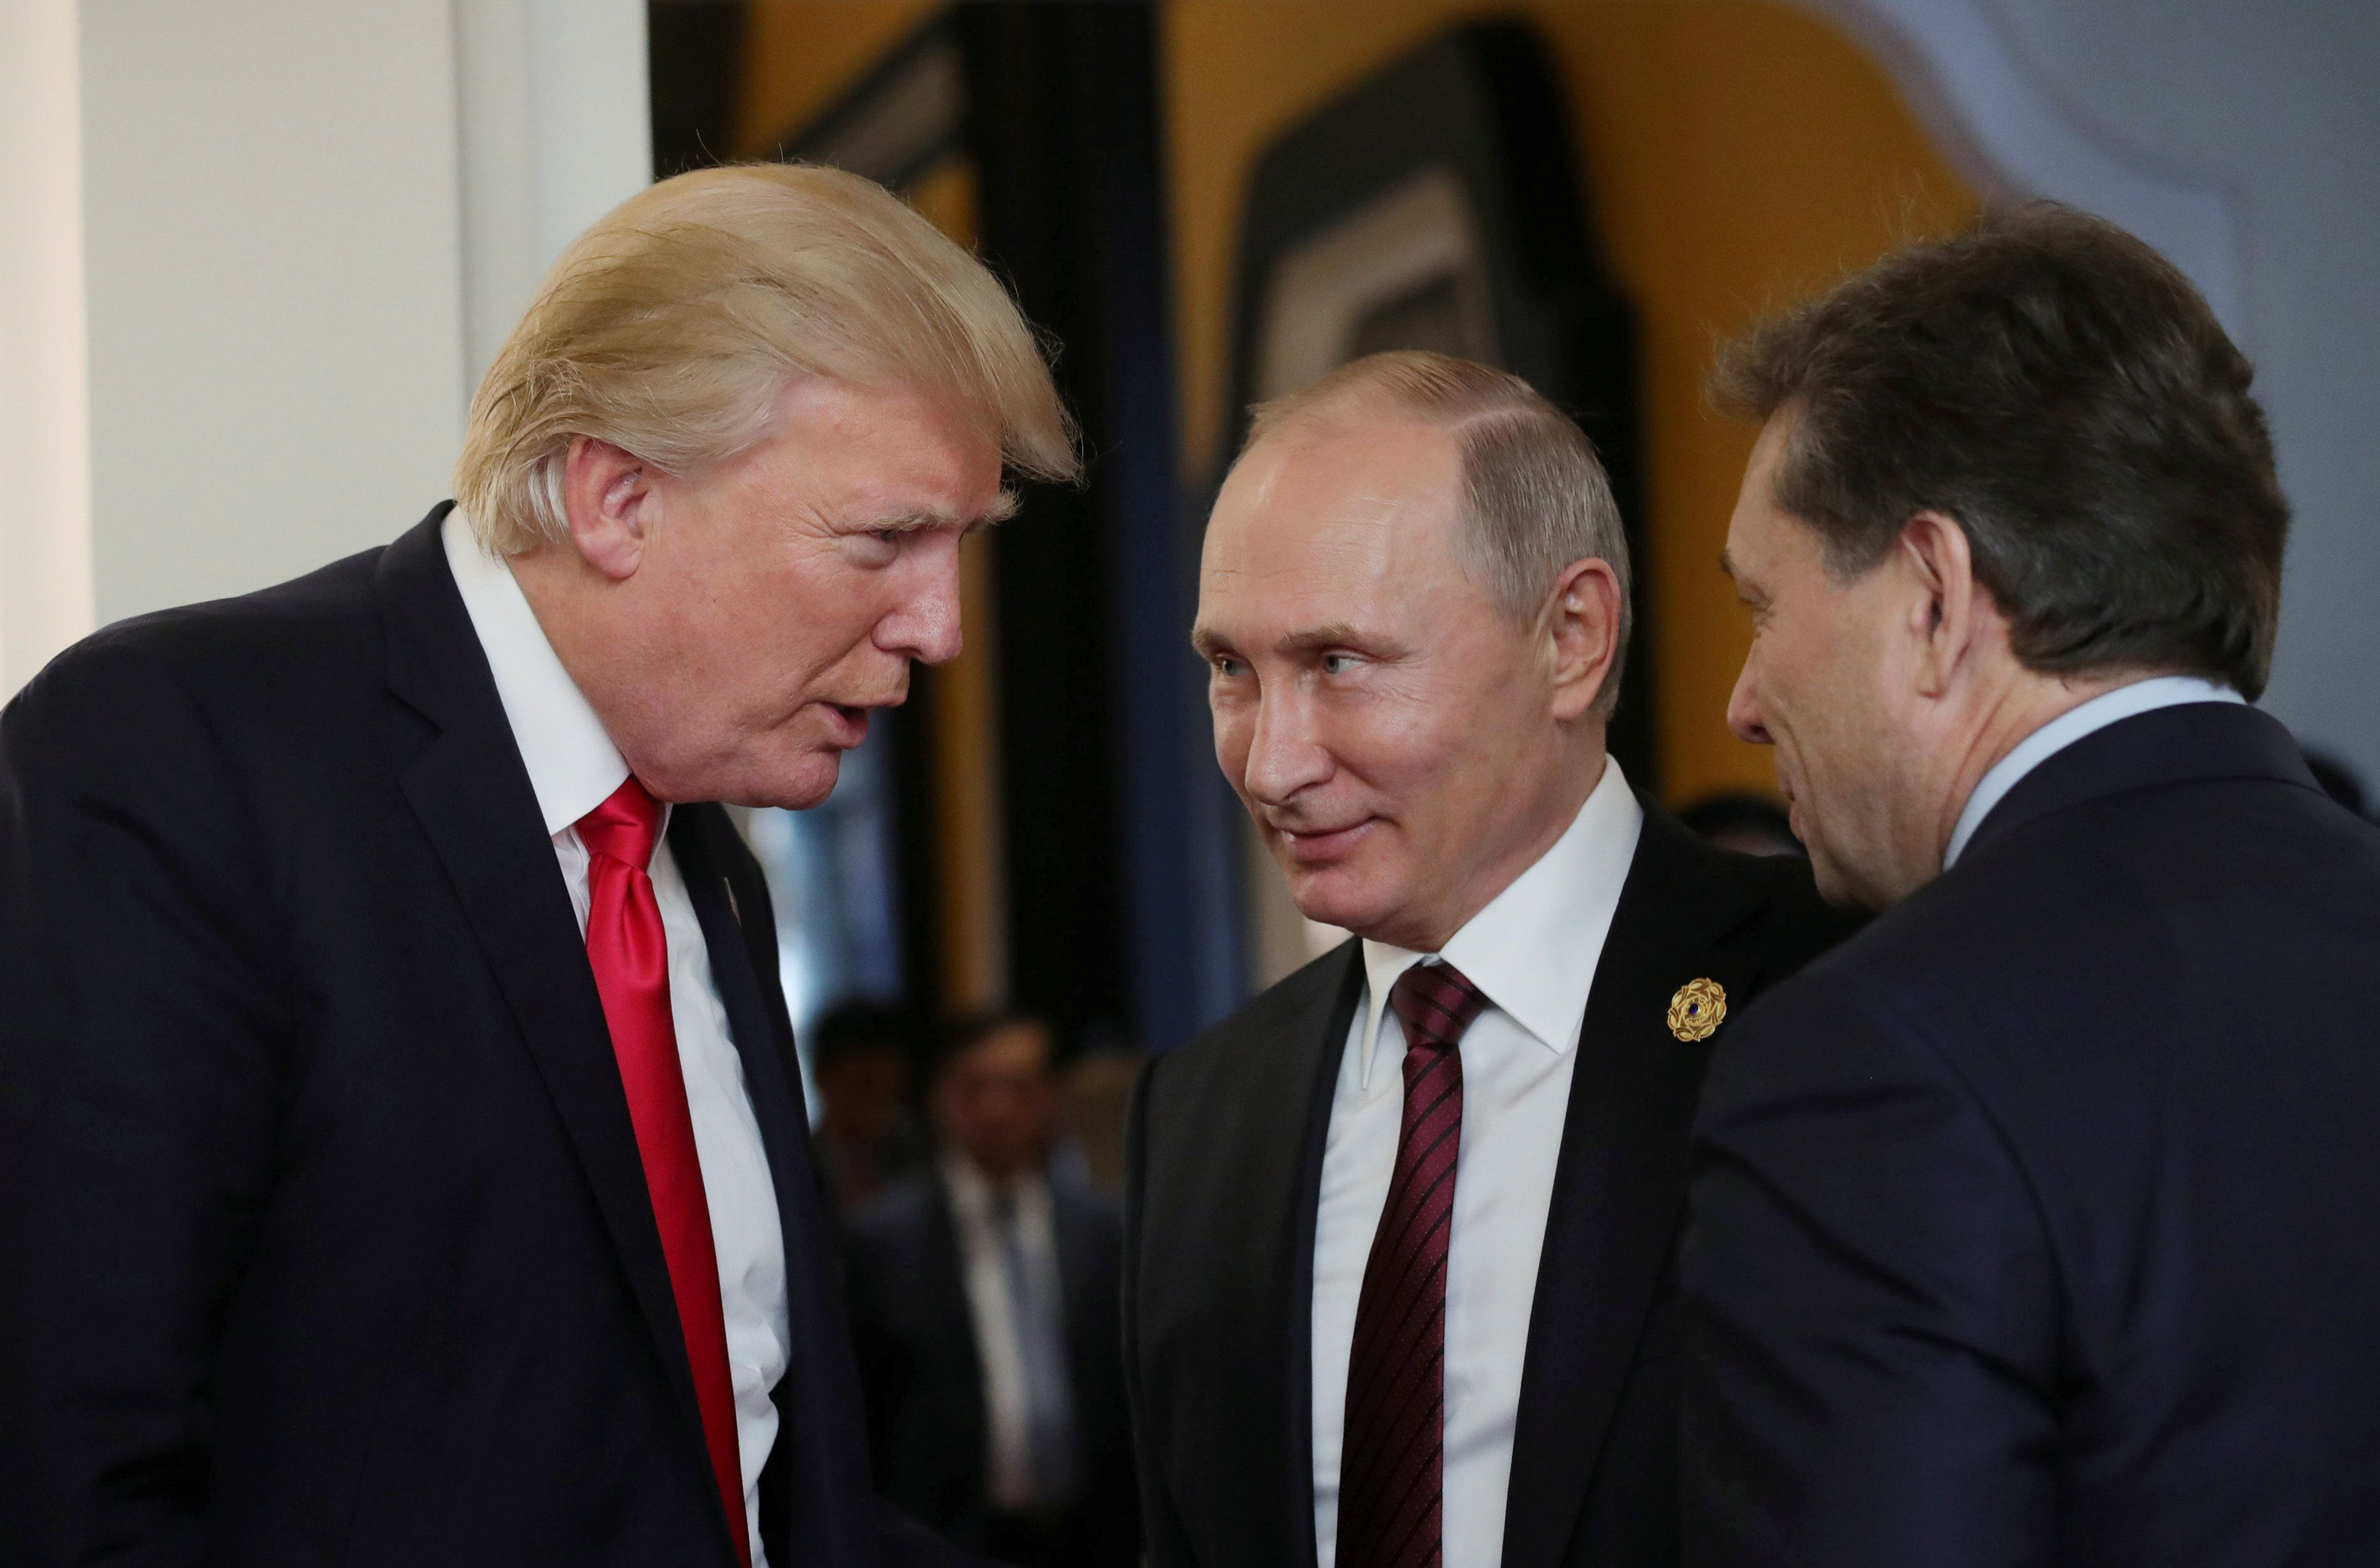 U.S. President Donald Trump and Russian President Vladimir Putin talk during a break in a session of the APEC summit in Danang, Vietnam November 11, 2017. Sputnik/Mikhail Klimentyev/Kremlin via REUTERS ATTENTION EDITORS - THIS IMAGE WAS PROVIDED BY A THIRD PARTY.